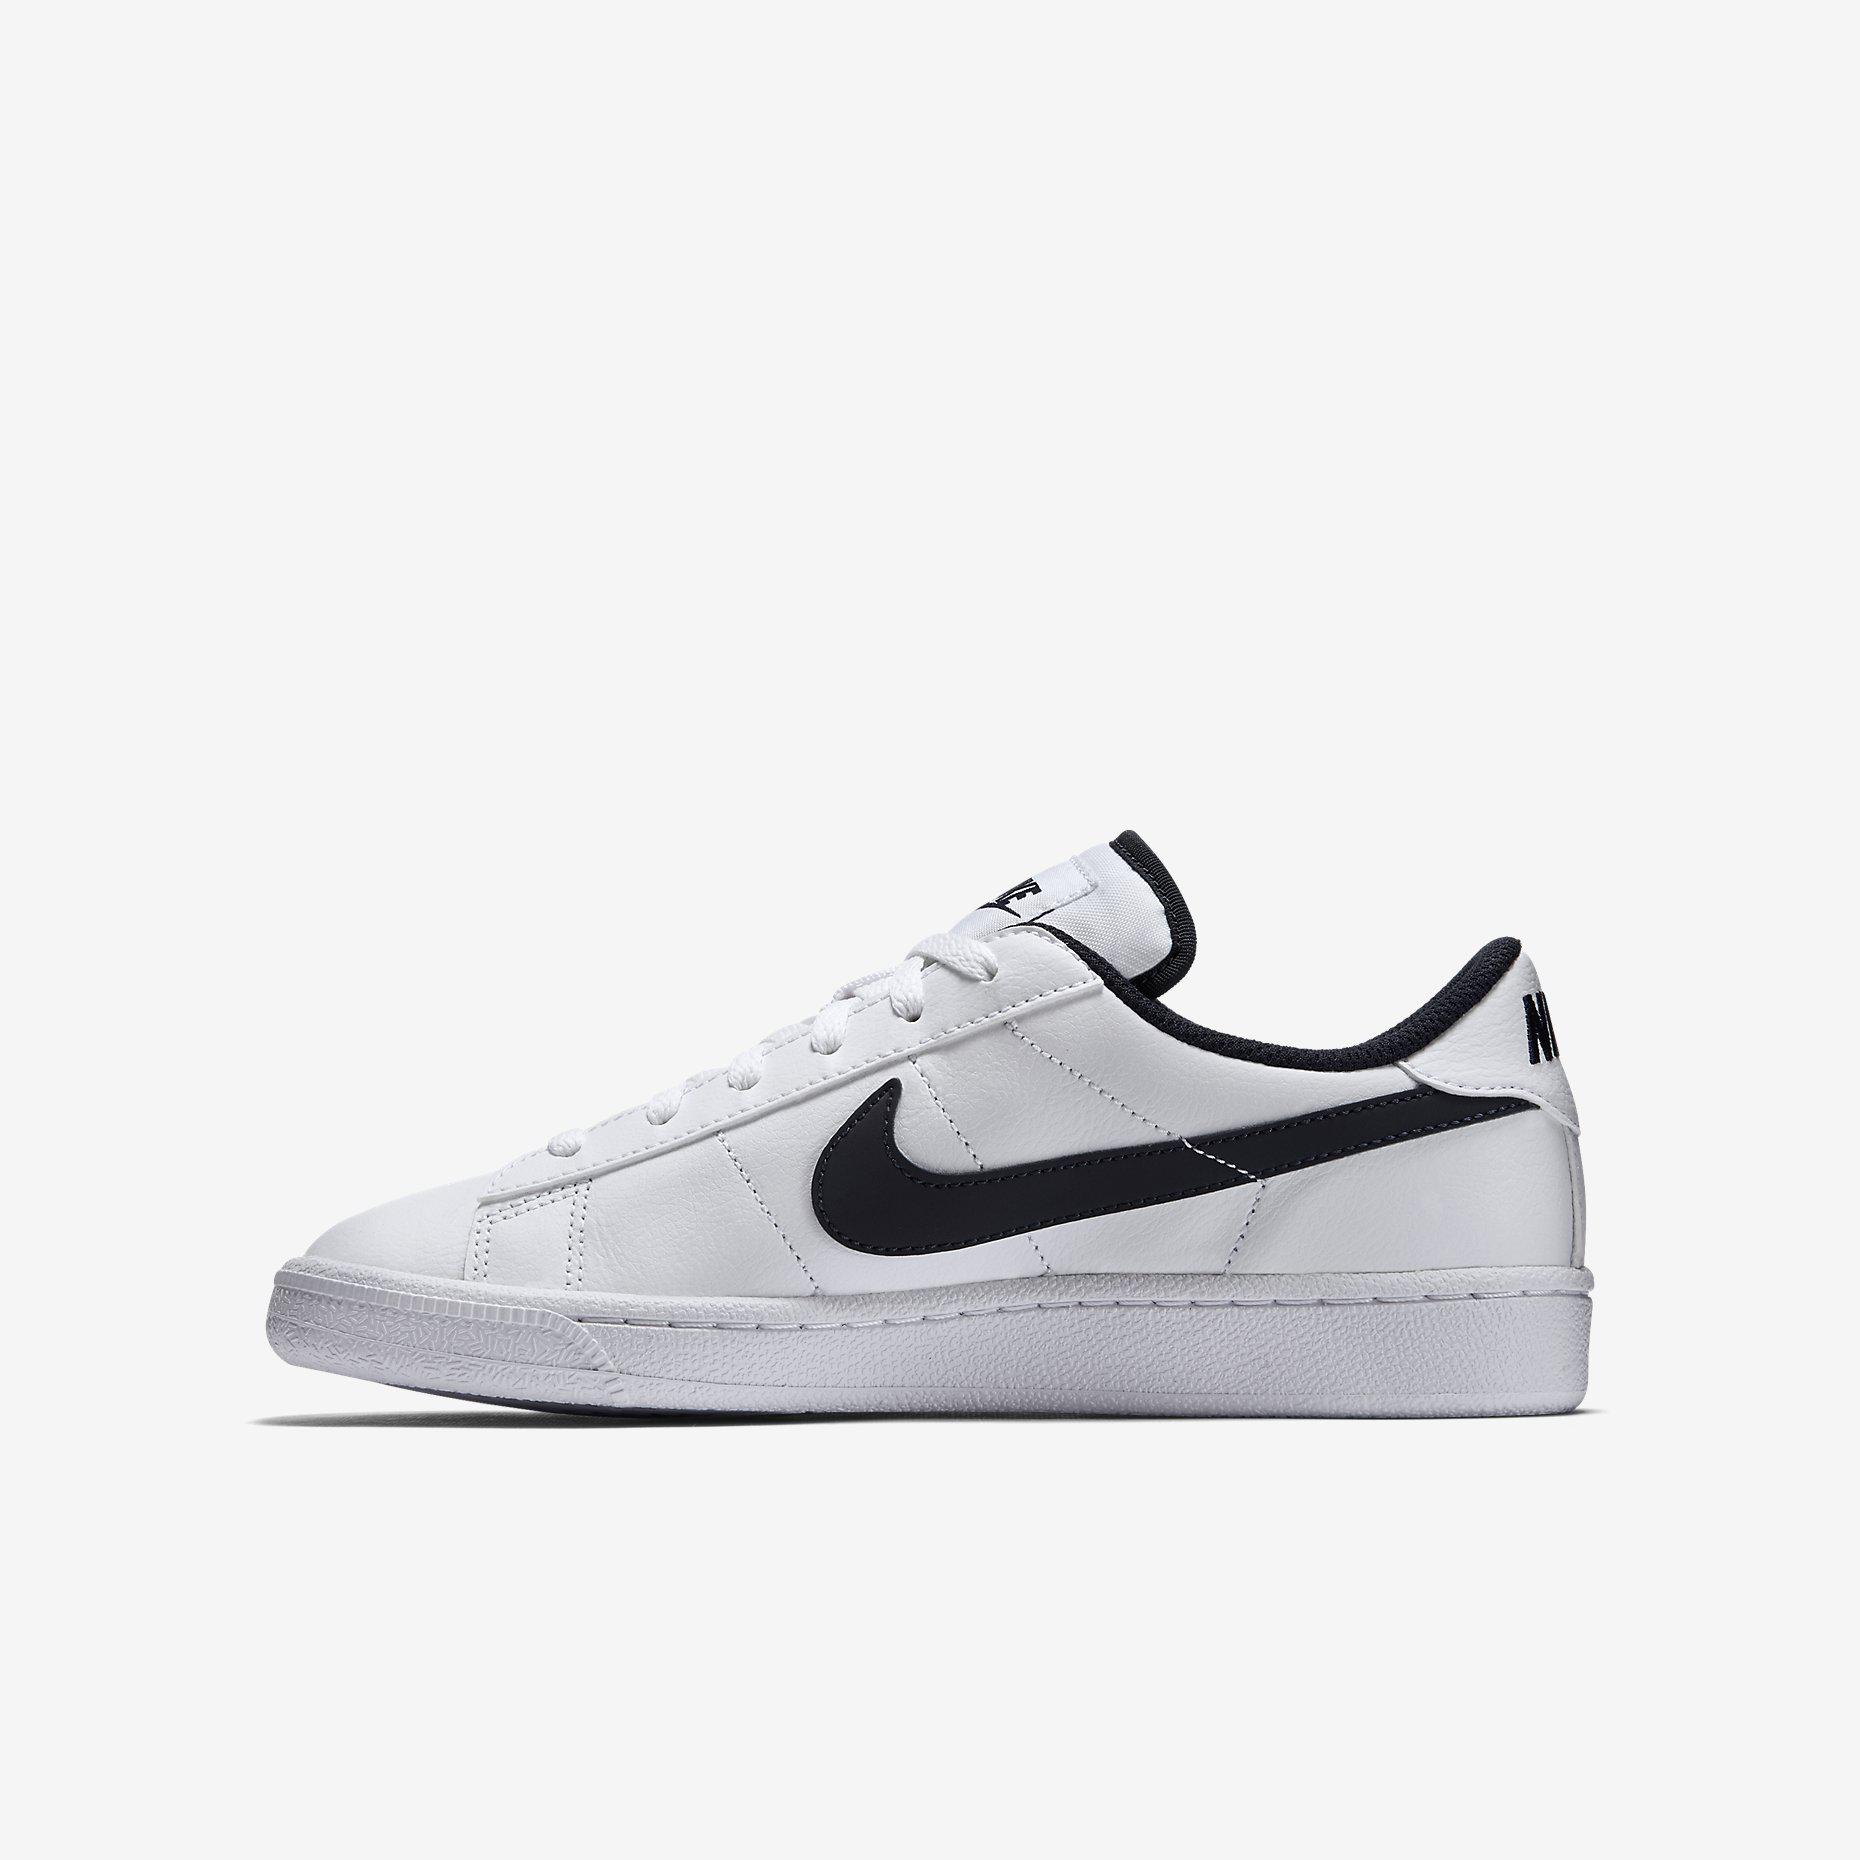 nike boys classic tennis shoes white obsidian